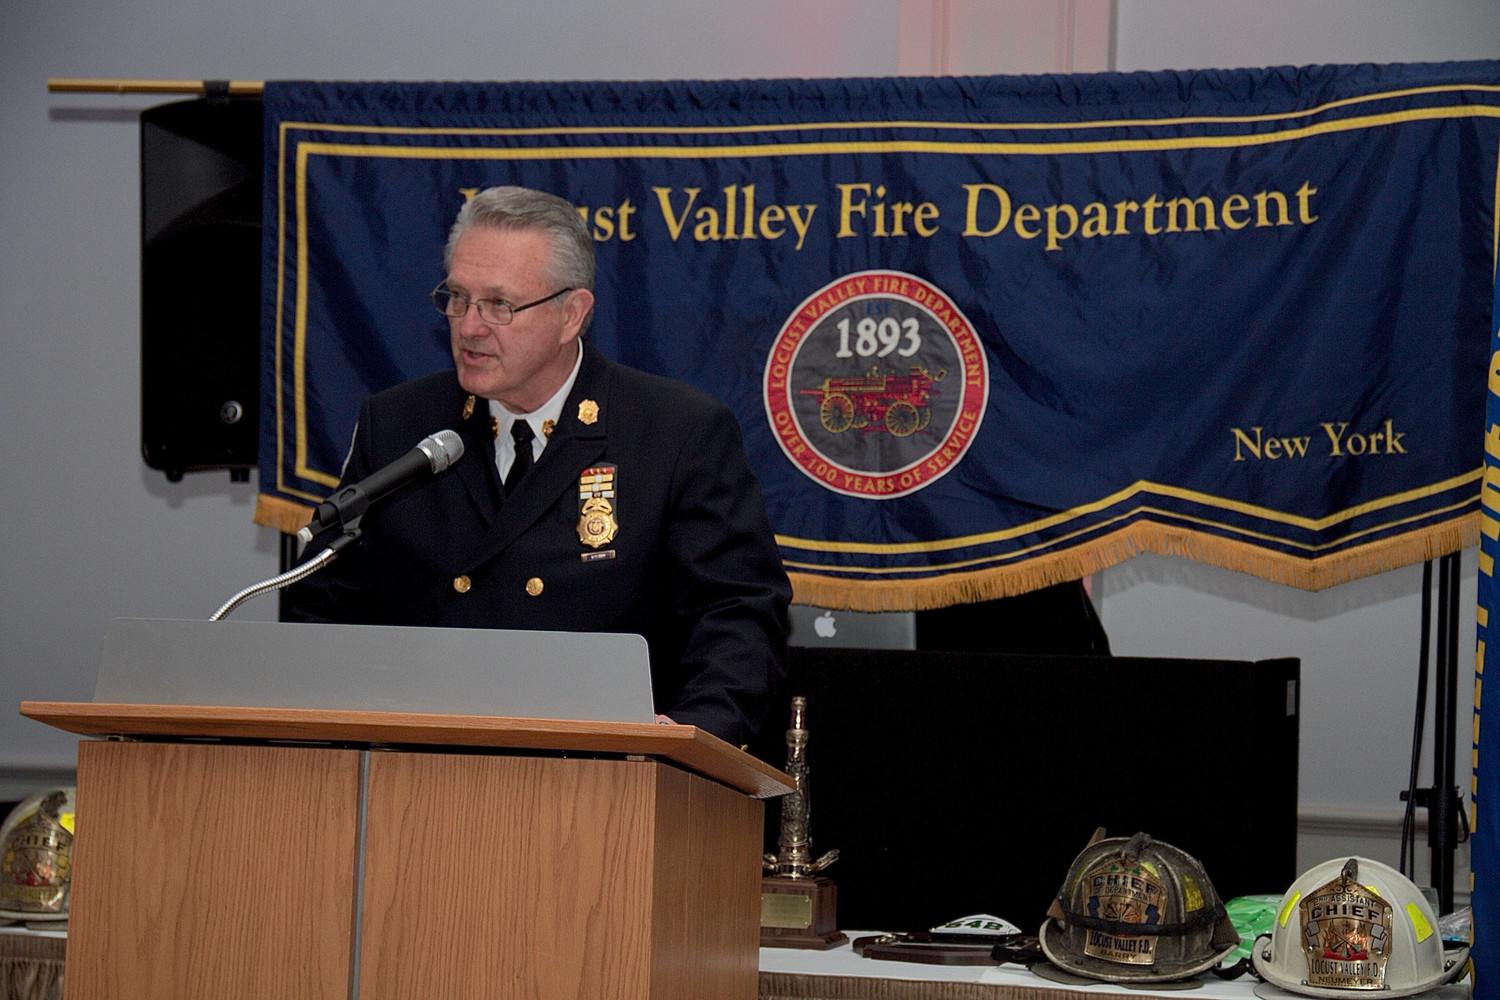 Peter Olson, chairman of the board of fire commissioners, spoke.